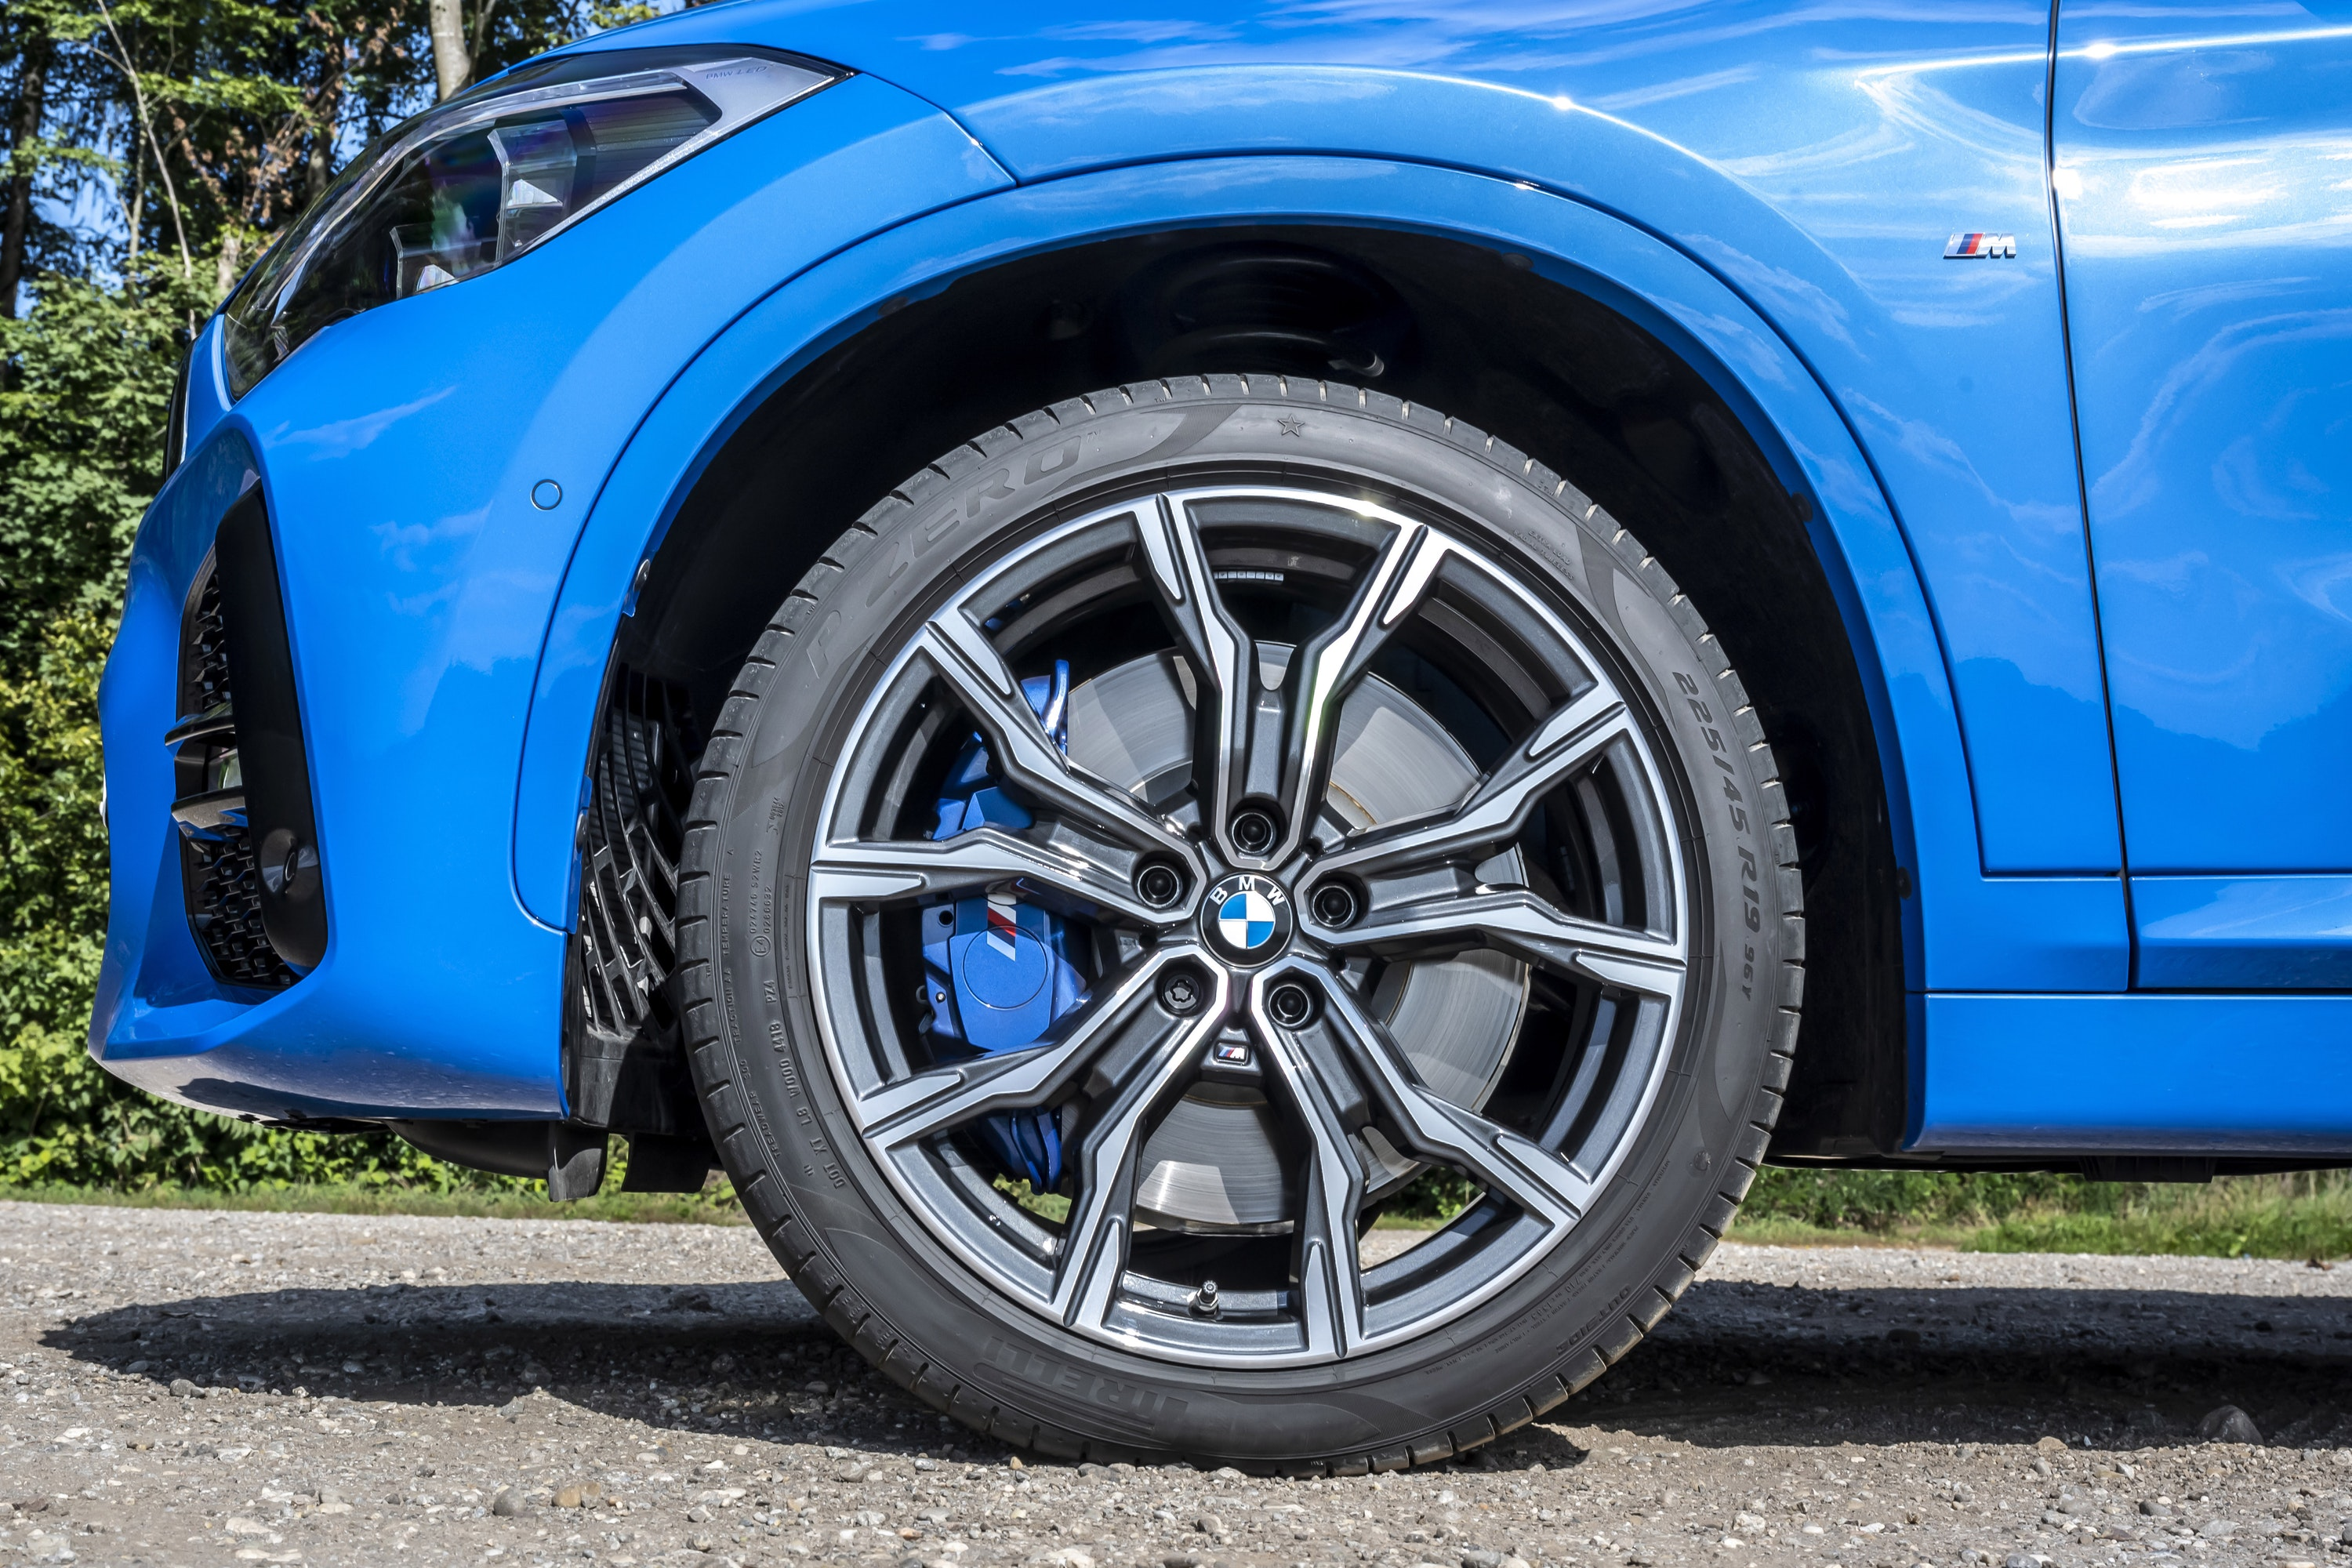 Close up of BMW X1 17 inch alloy wheel